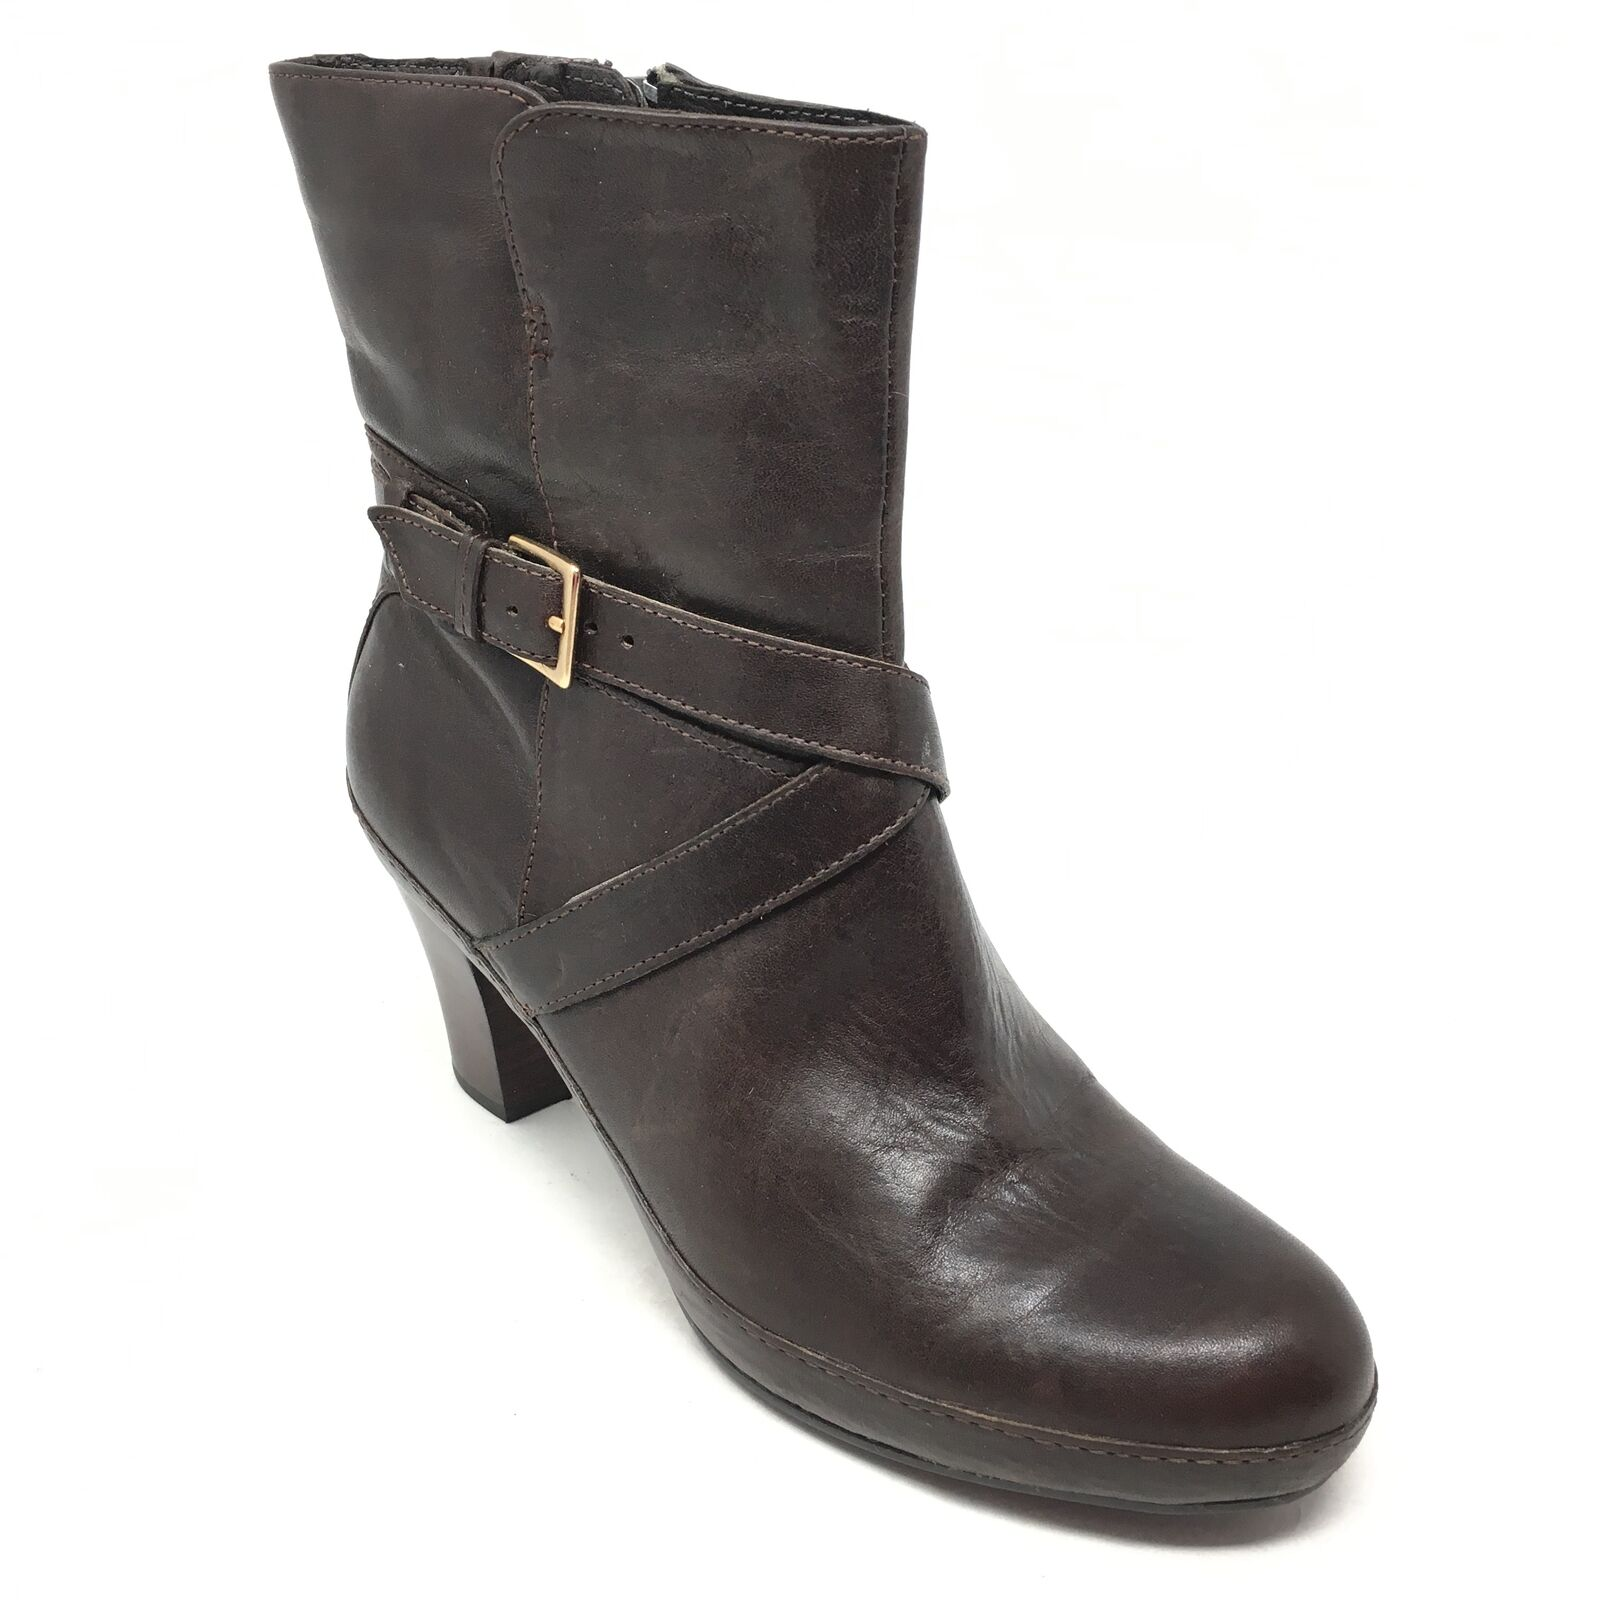 Women's Clarks Artisan Booties shoes Size 6.5M Brown Leather Side Zip Up AA2